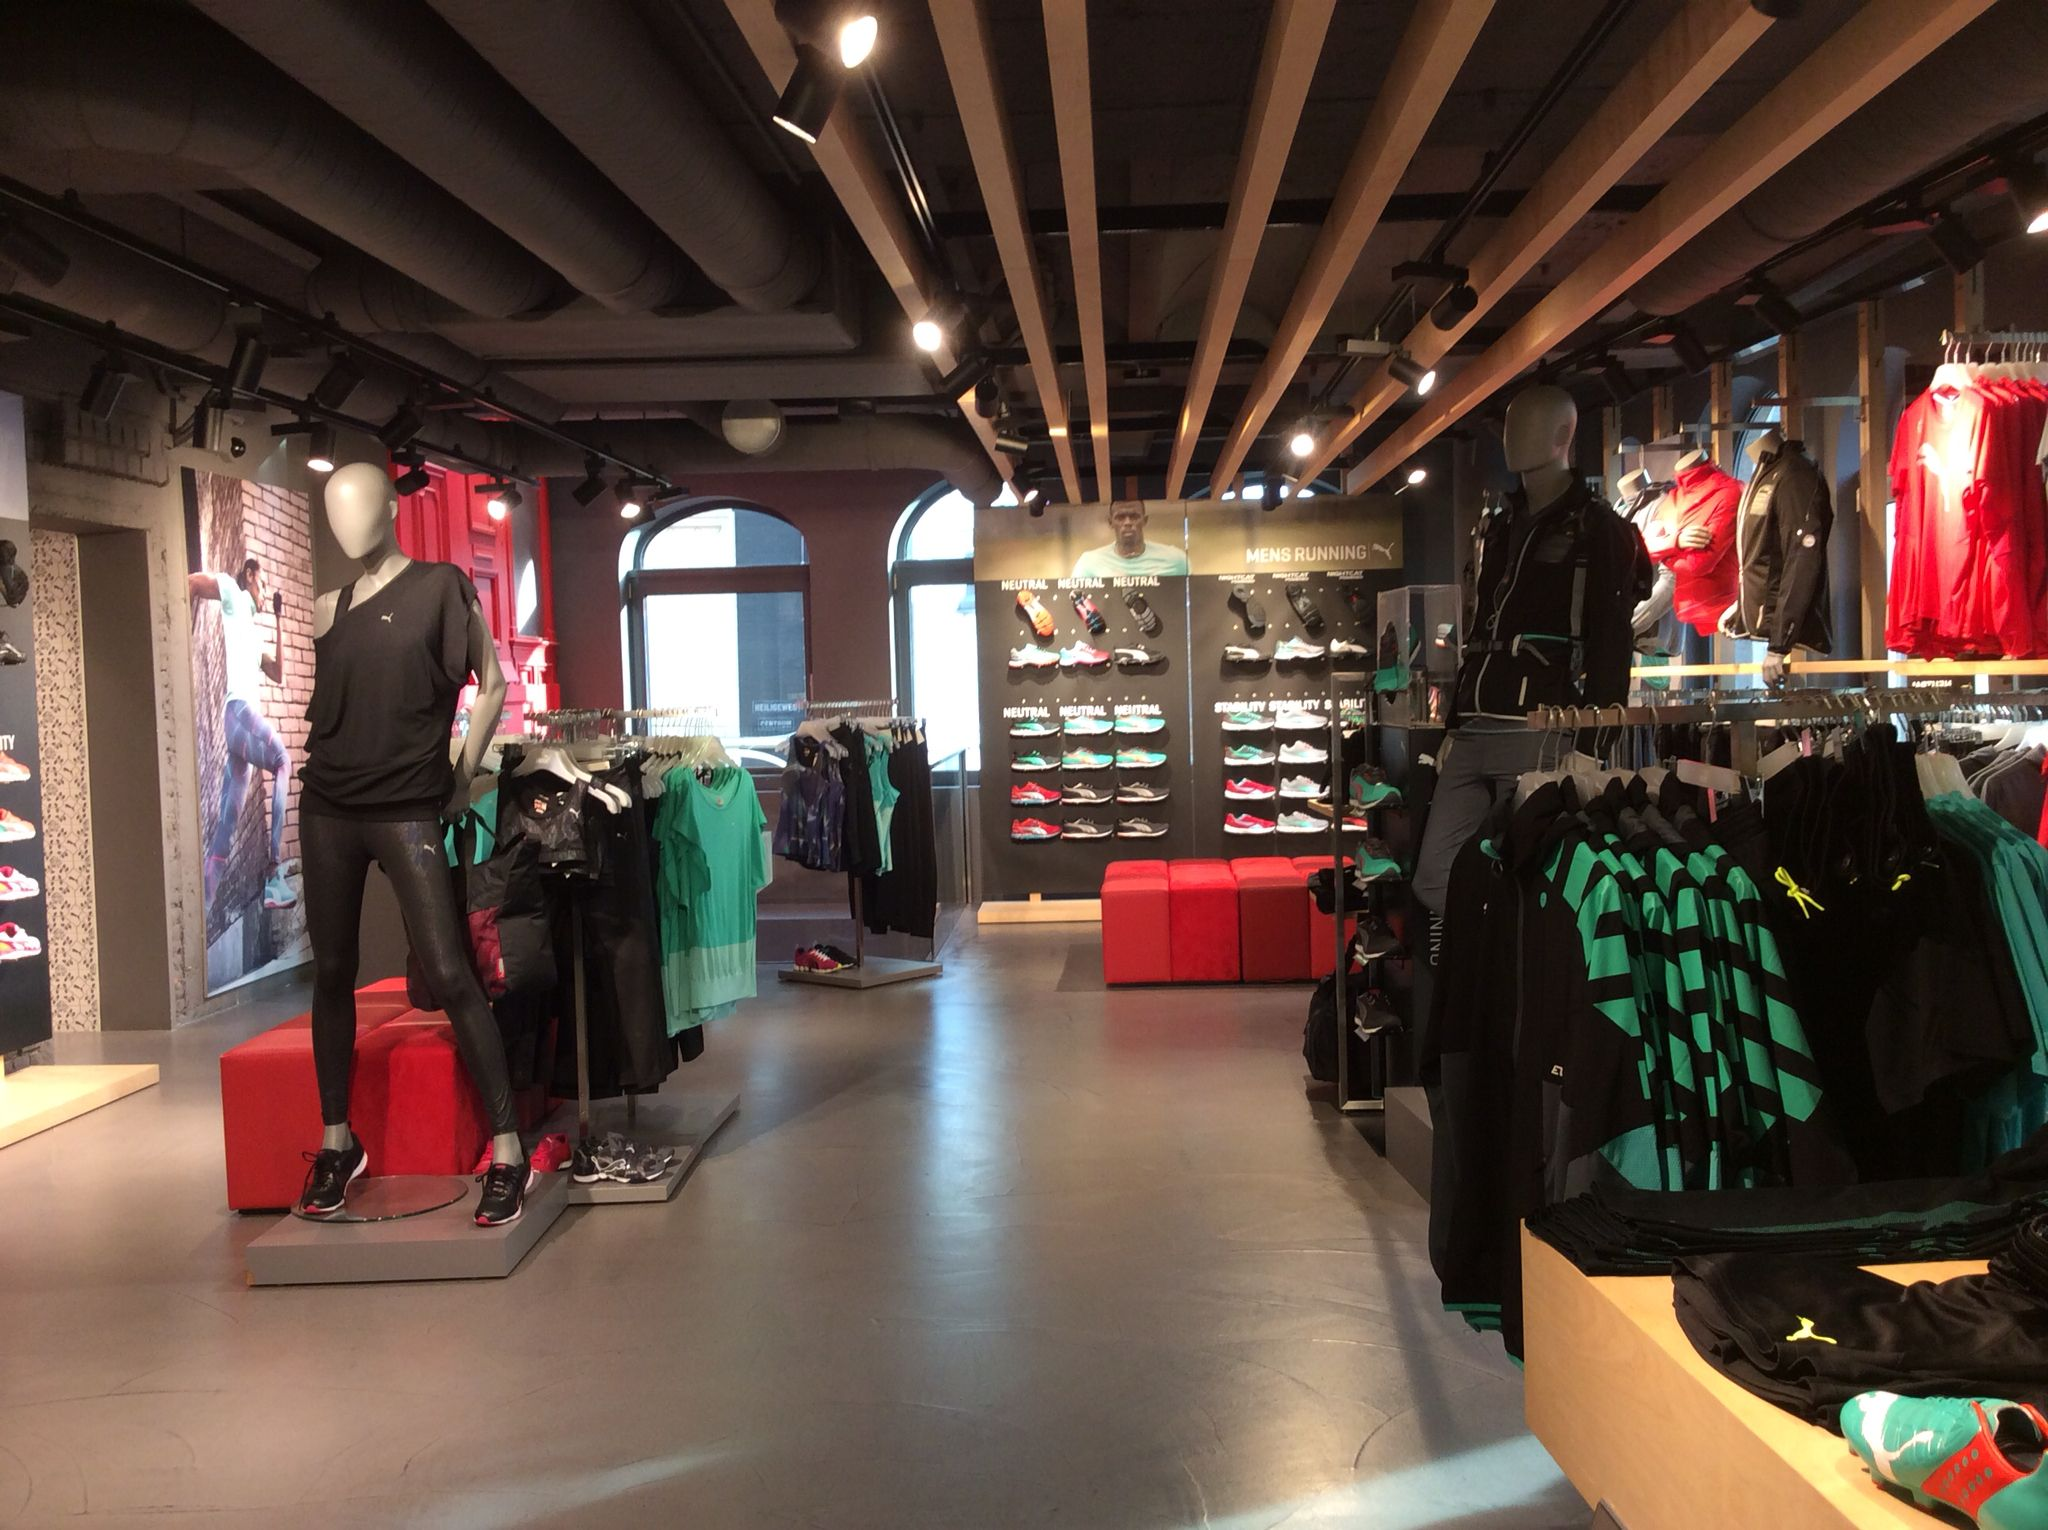 Horizontal timber slats across the roof draws the eye to the shoes at the back of the store puma concept store amsterdam november 2014